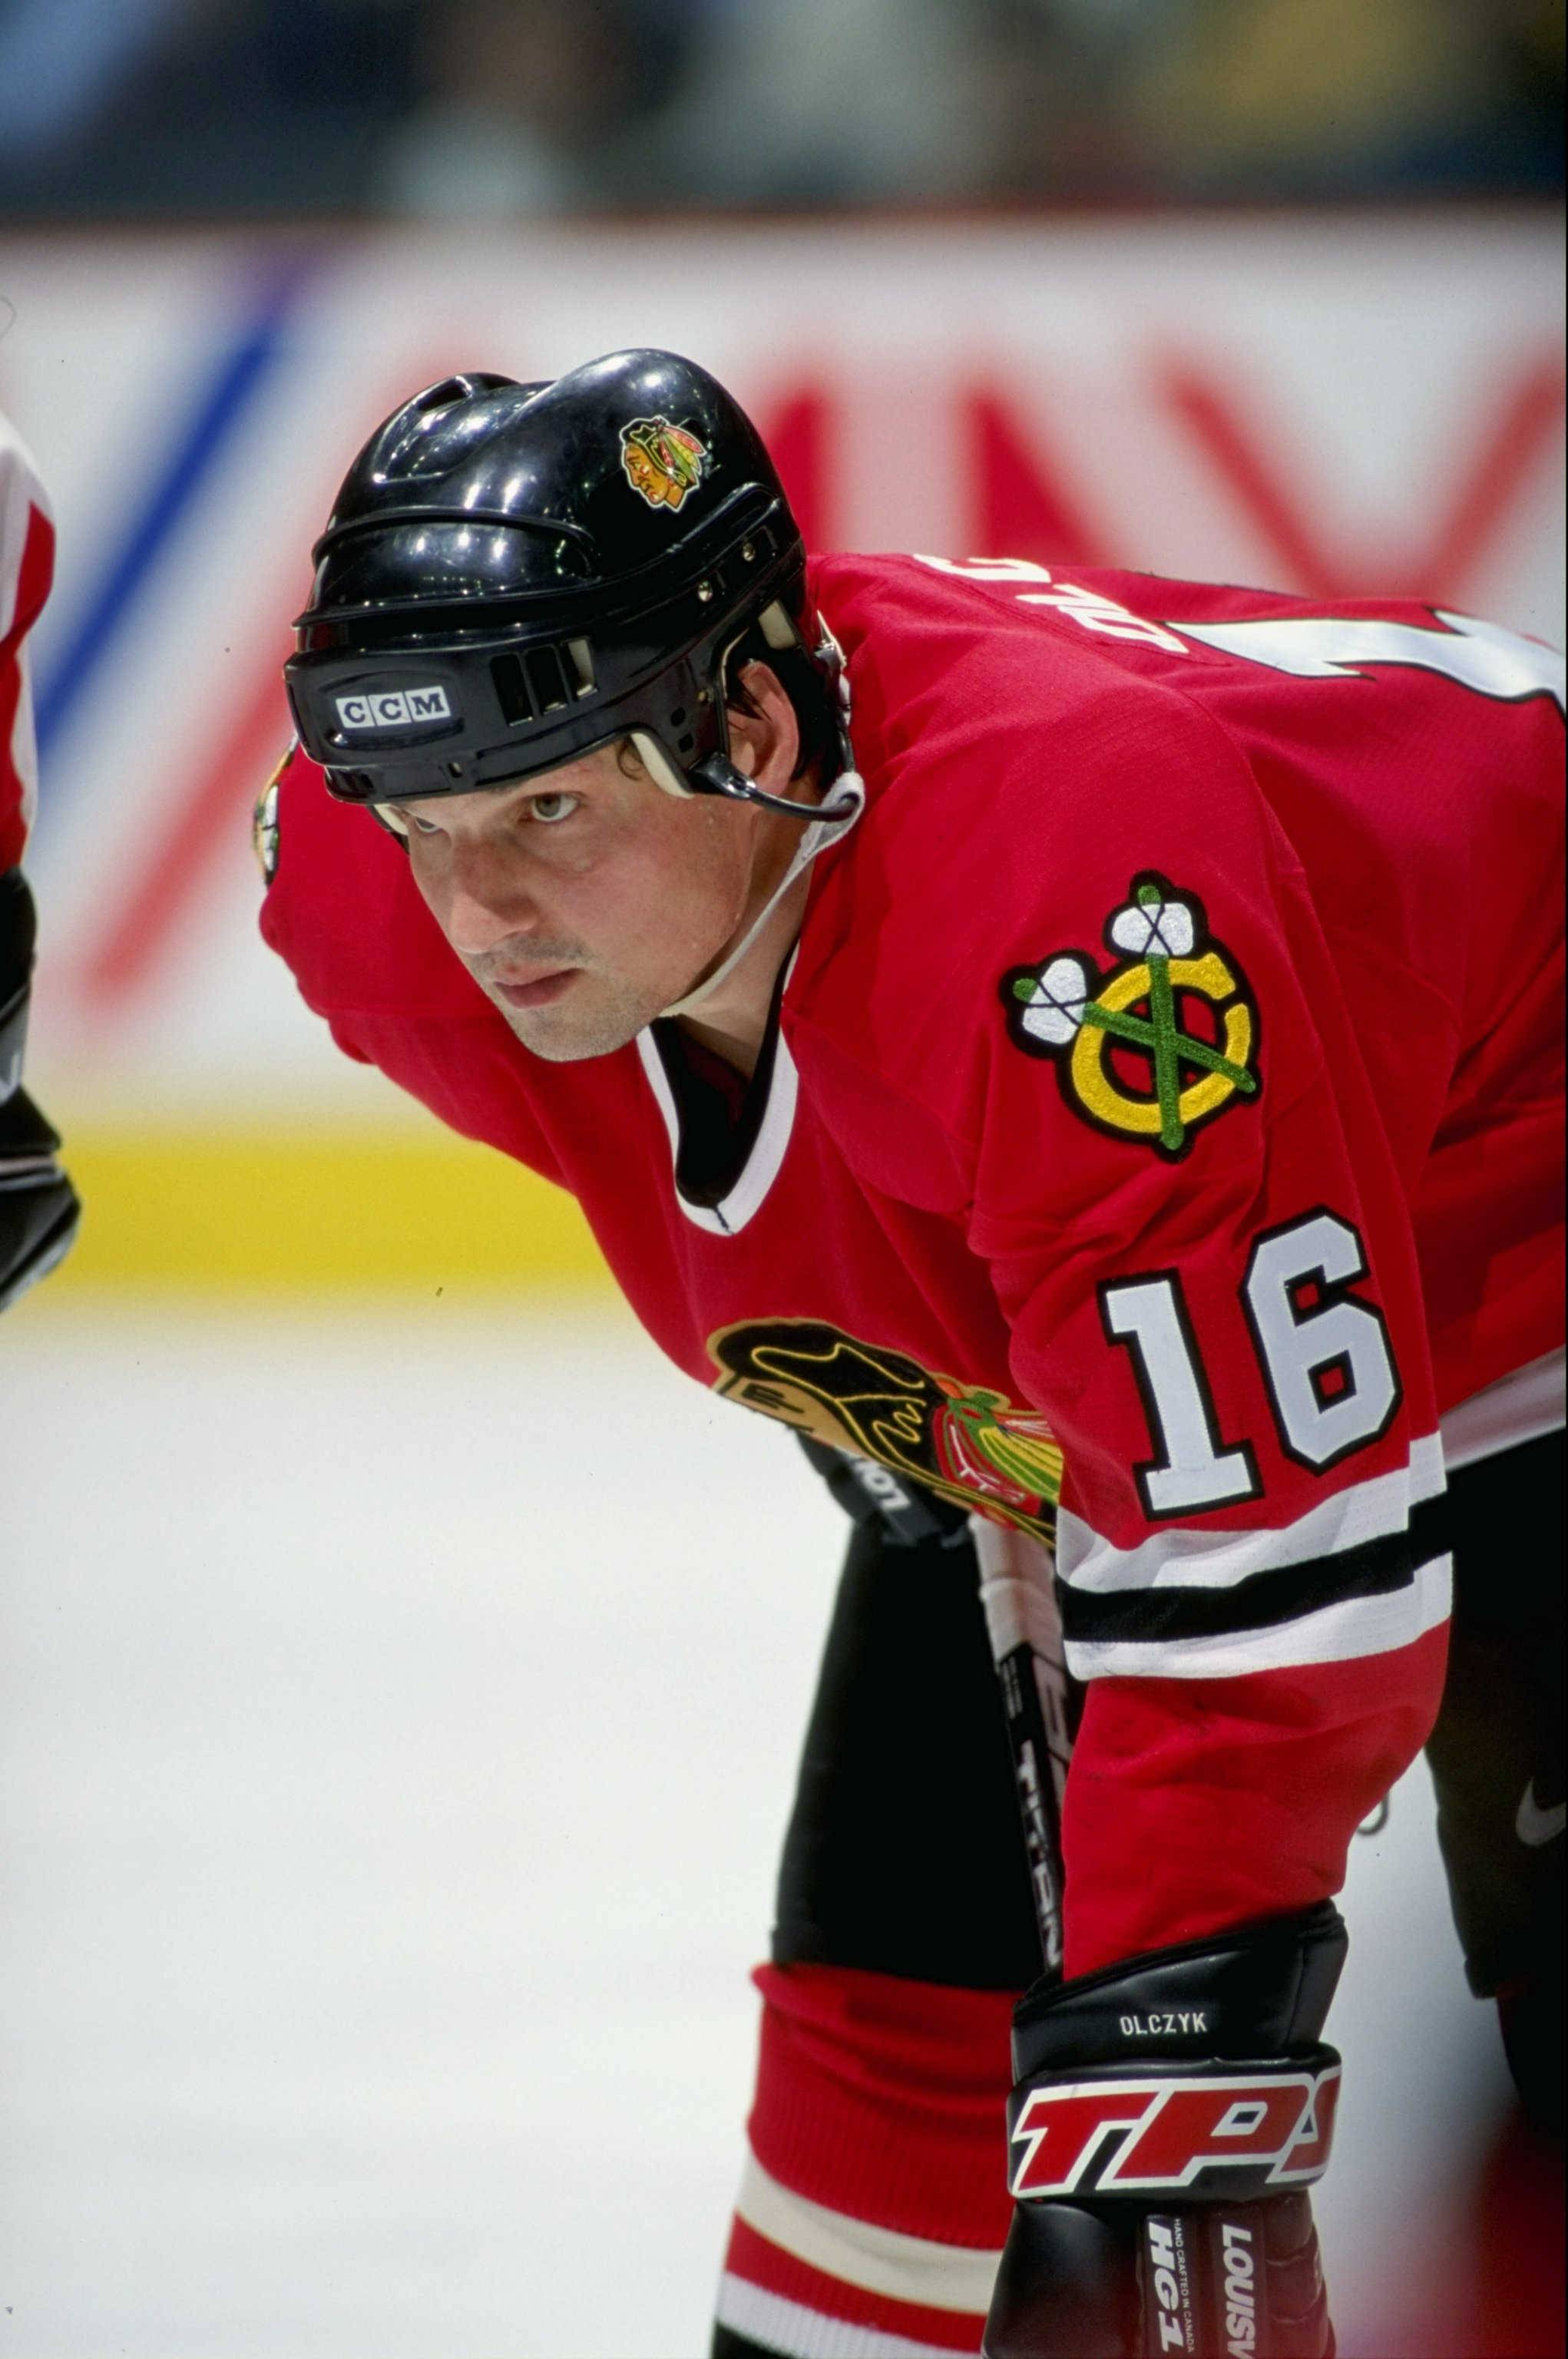 COURTESY OF THE CHICAGO BLACKHAWKS	Eddie Olczyk started and finished his career as a Blackhawks player. Today he's a beloved TV commentator.